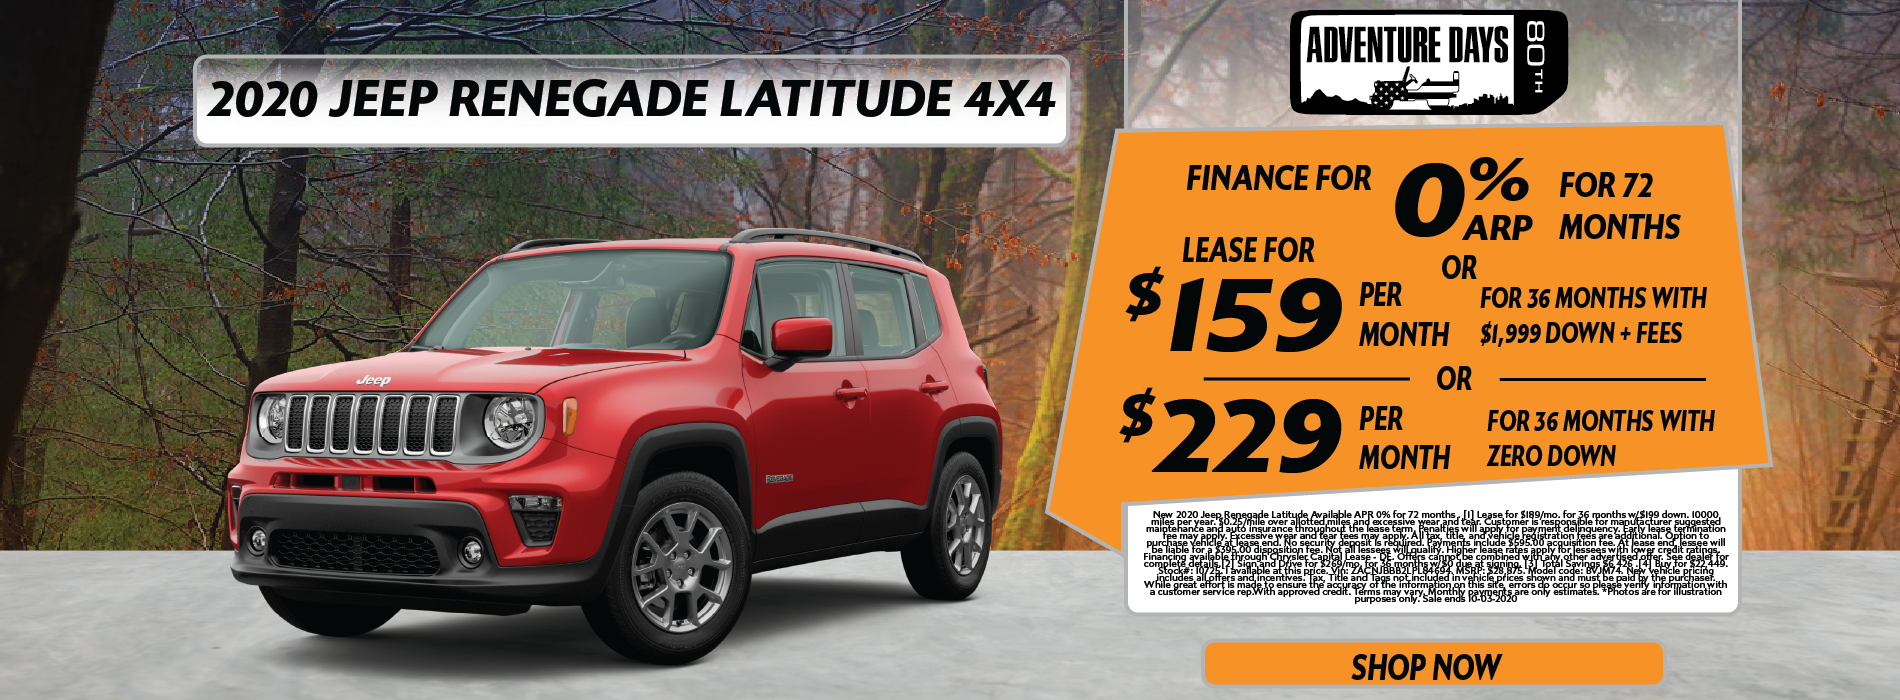 Whitewater – Jeep Renegade September EOM